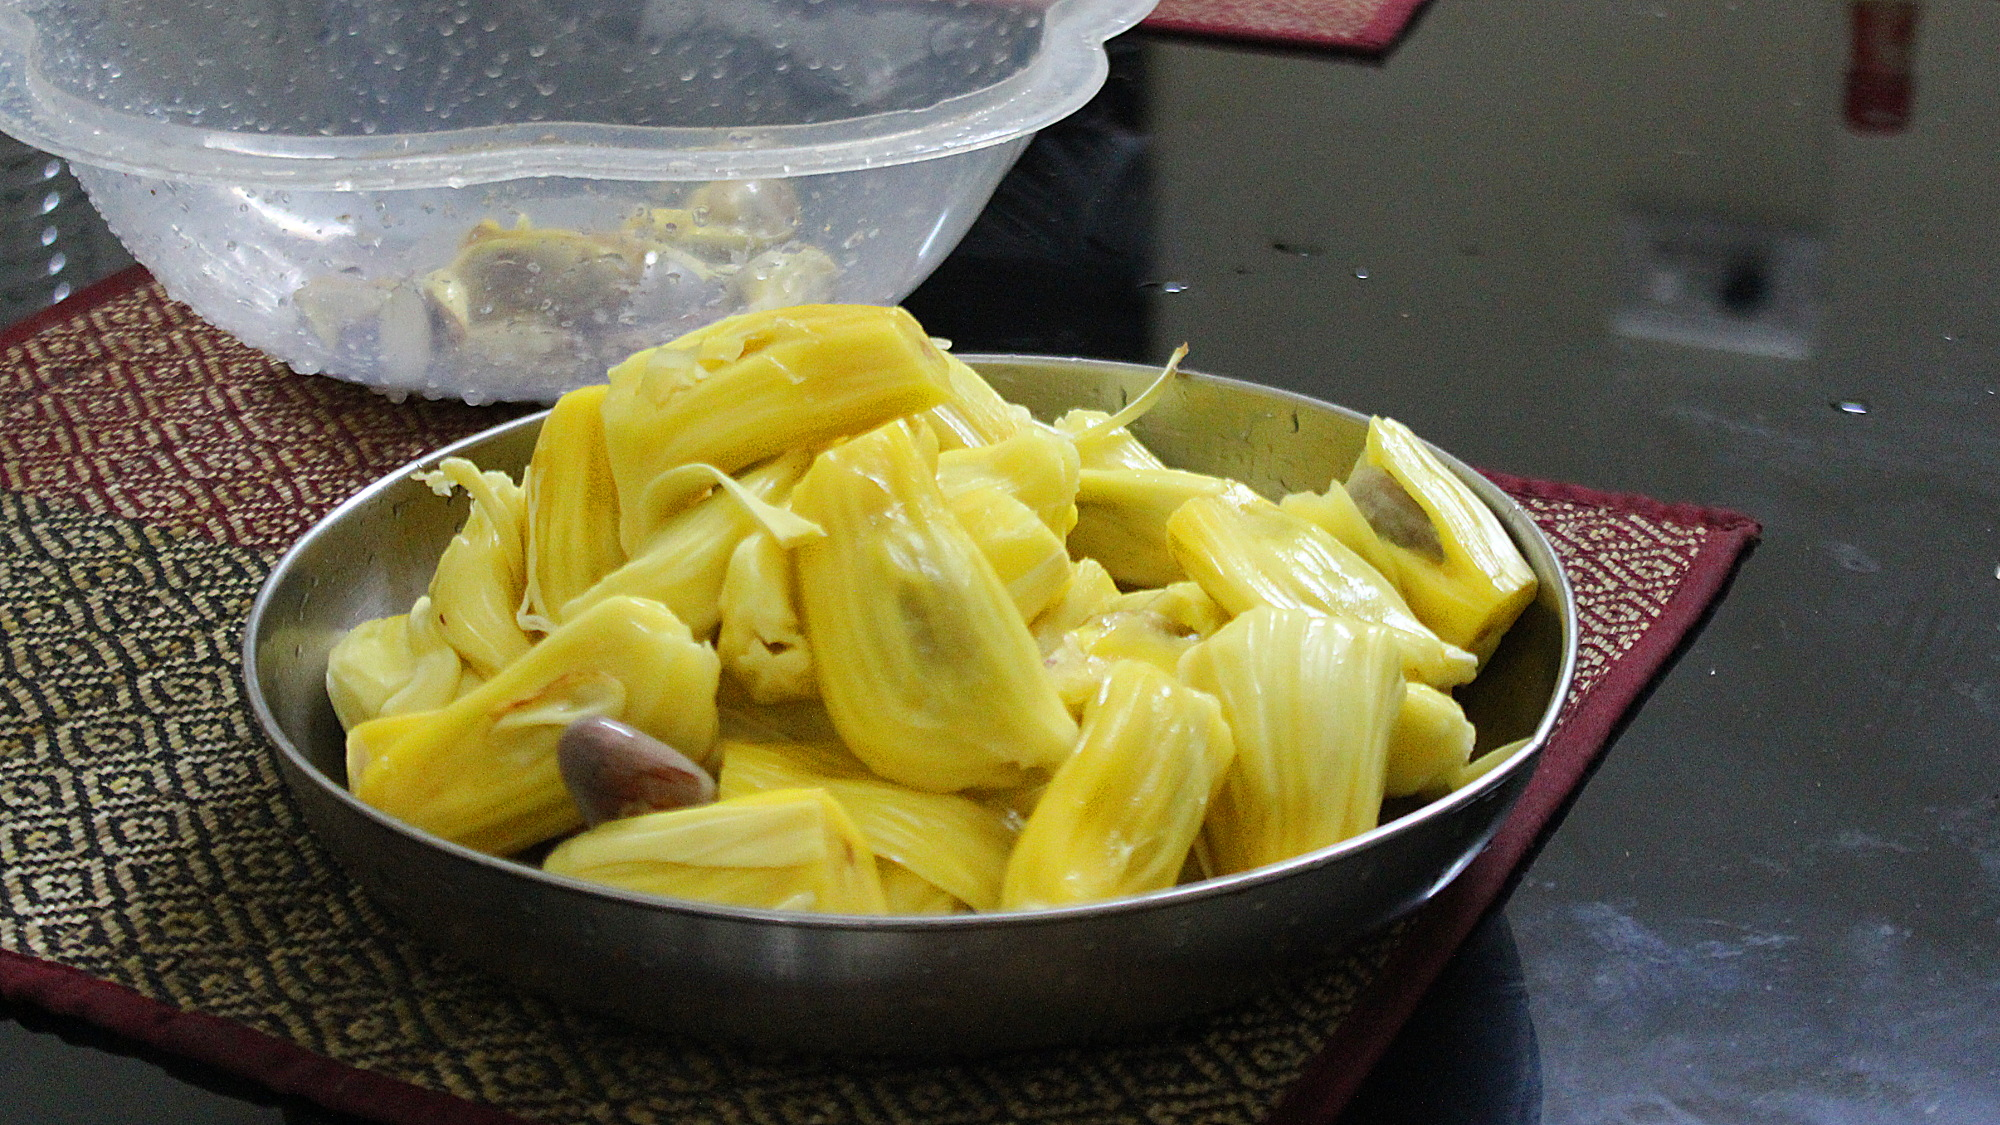 Peeled and cut jackfruit pieces on a metal plate.